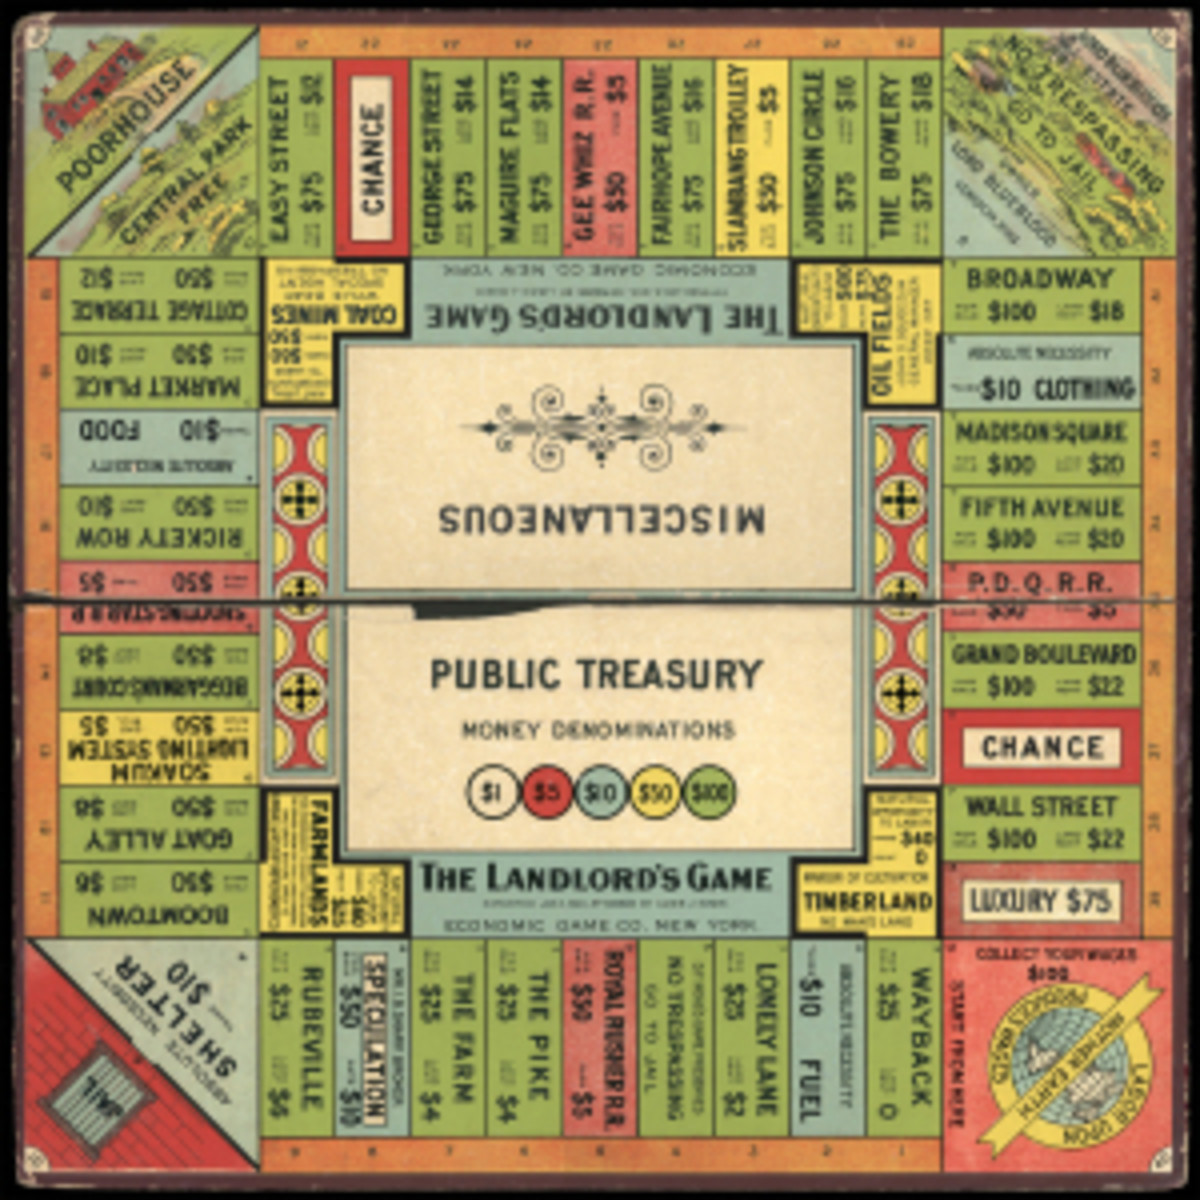 1904 version of The Landlord's Game.